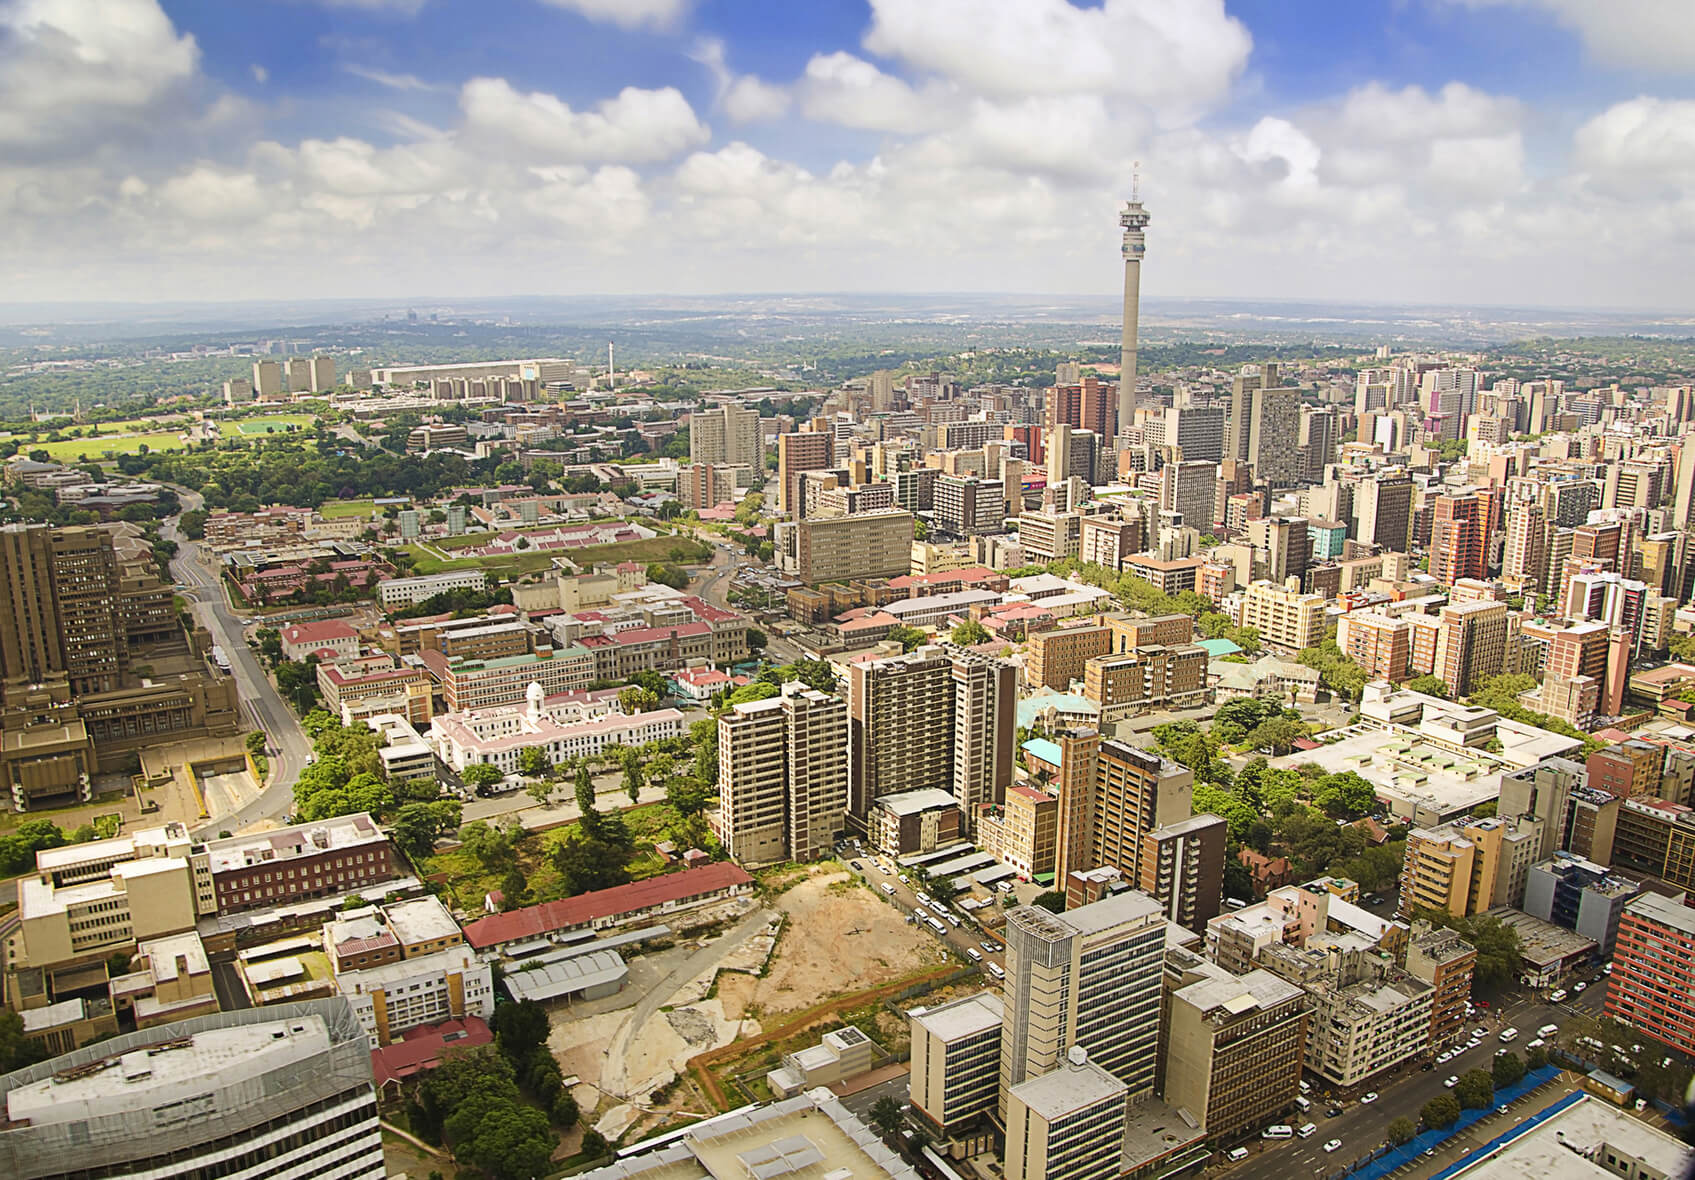 HOT!! New York to Johannesburg, South Africa for only $396 roundtrip